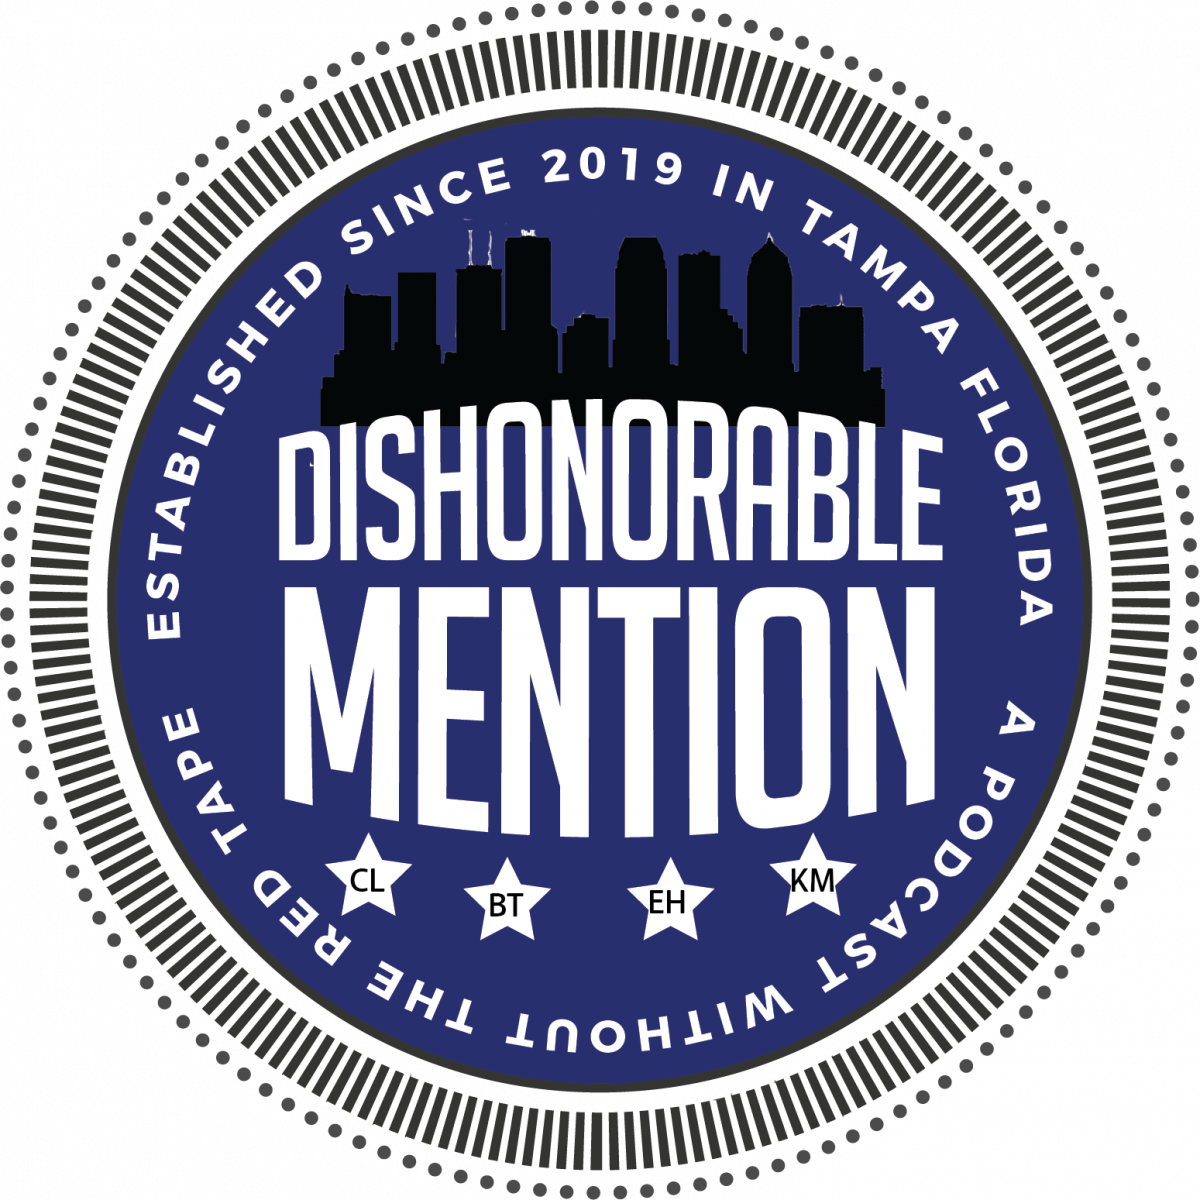 Dishonorable Mention Podcast Episode 26: DM with the Rays! Featuring President Brian Auld